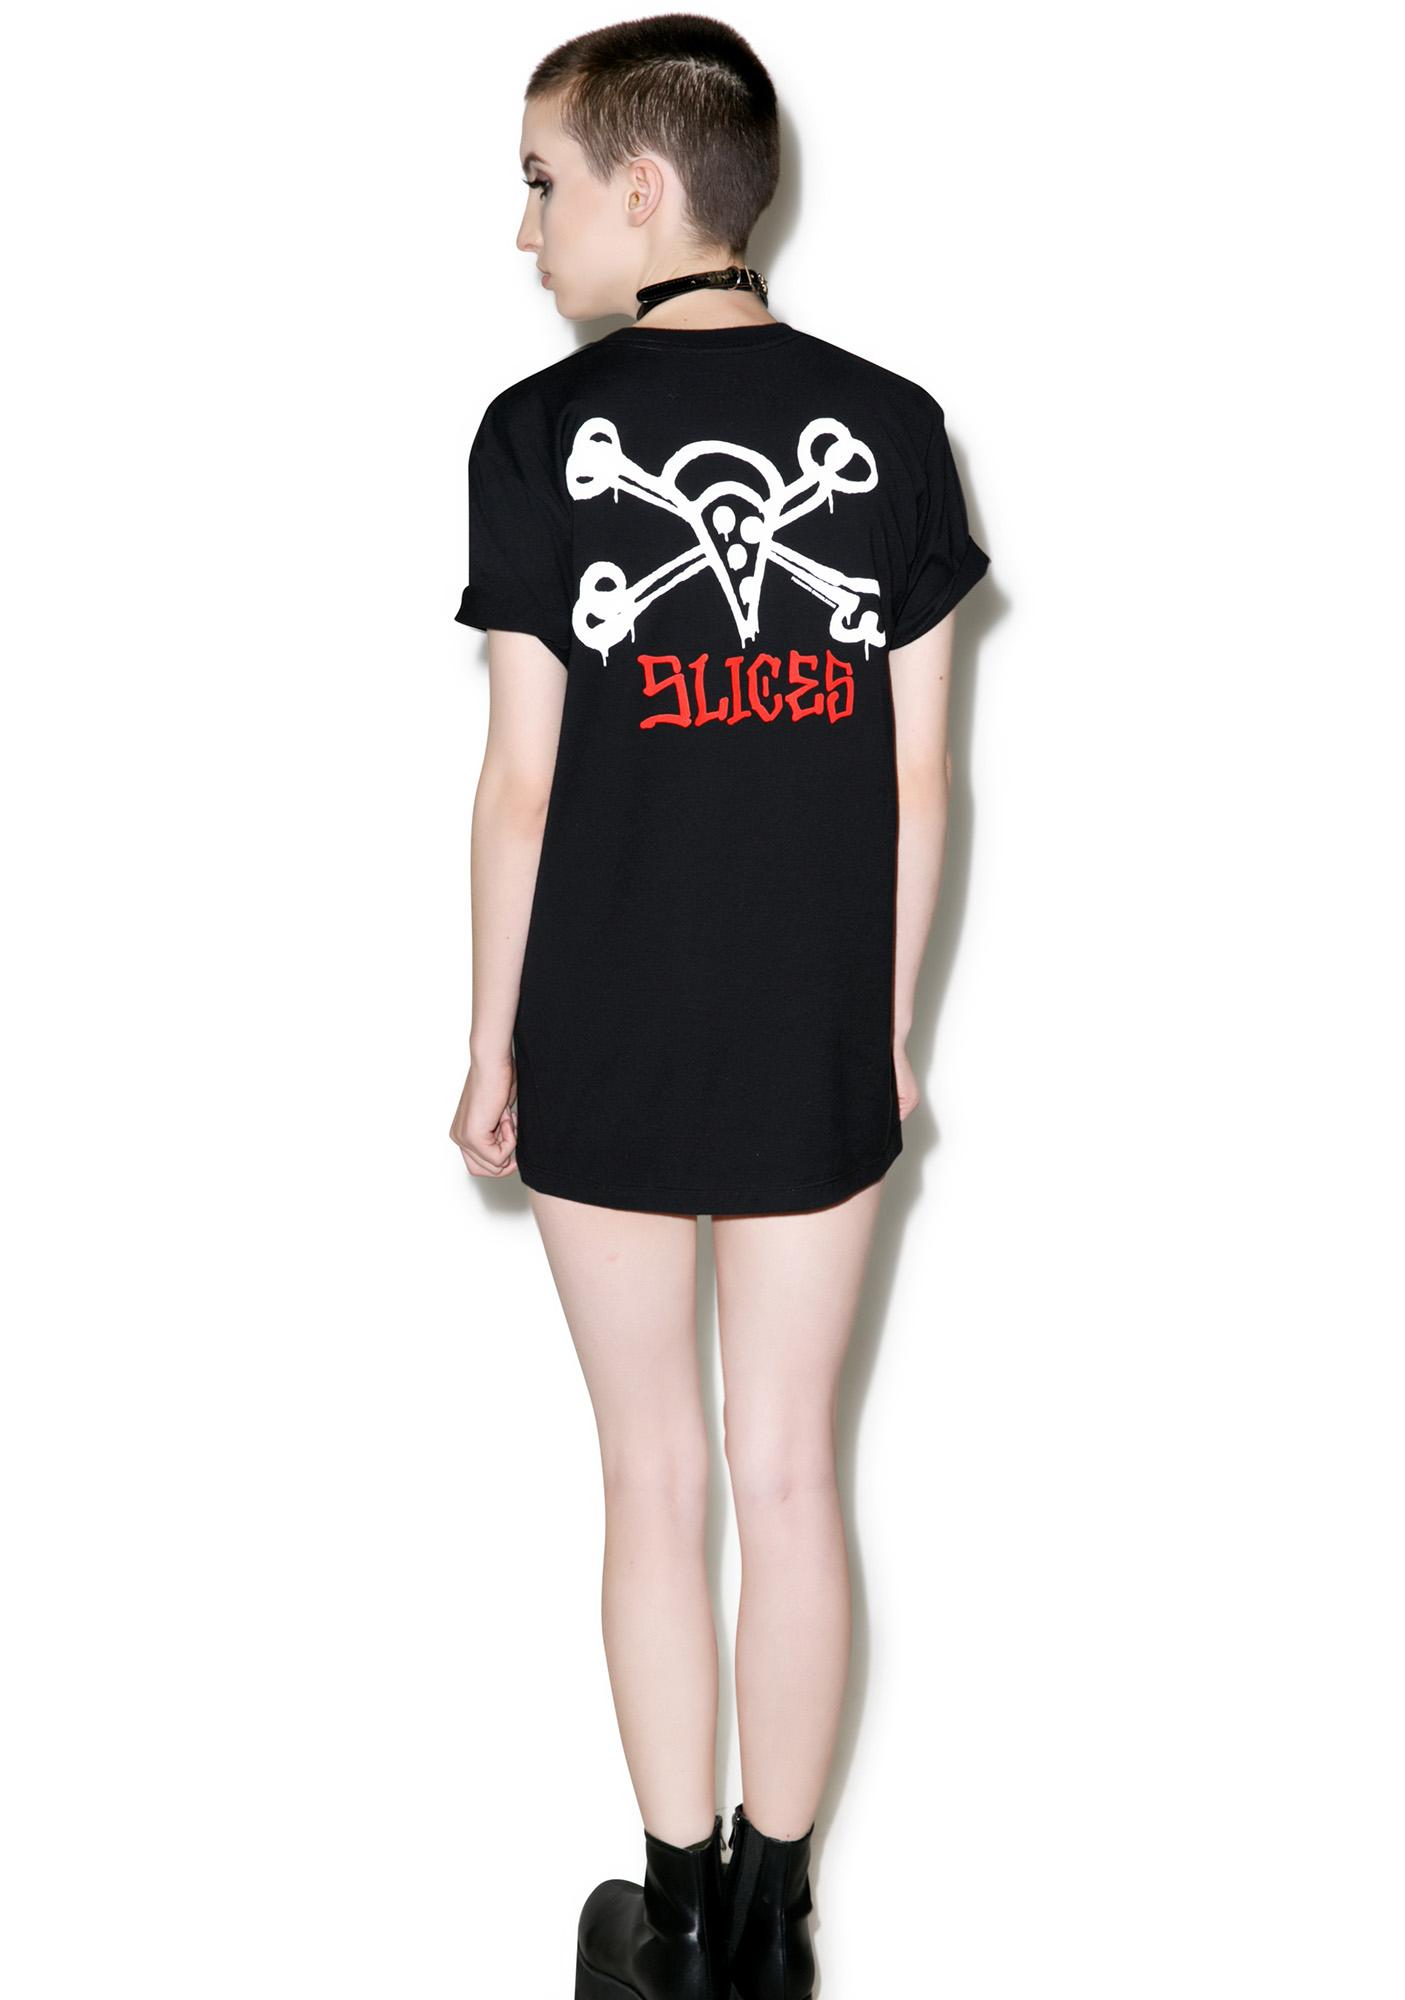 Pizzanista Rat Slices Tee